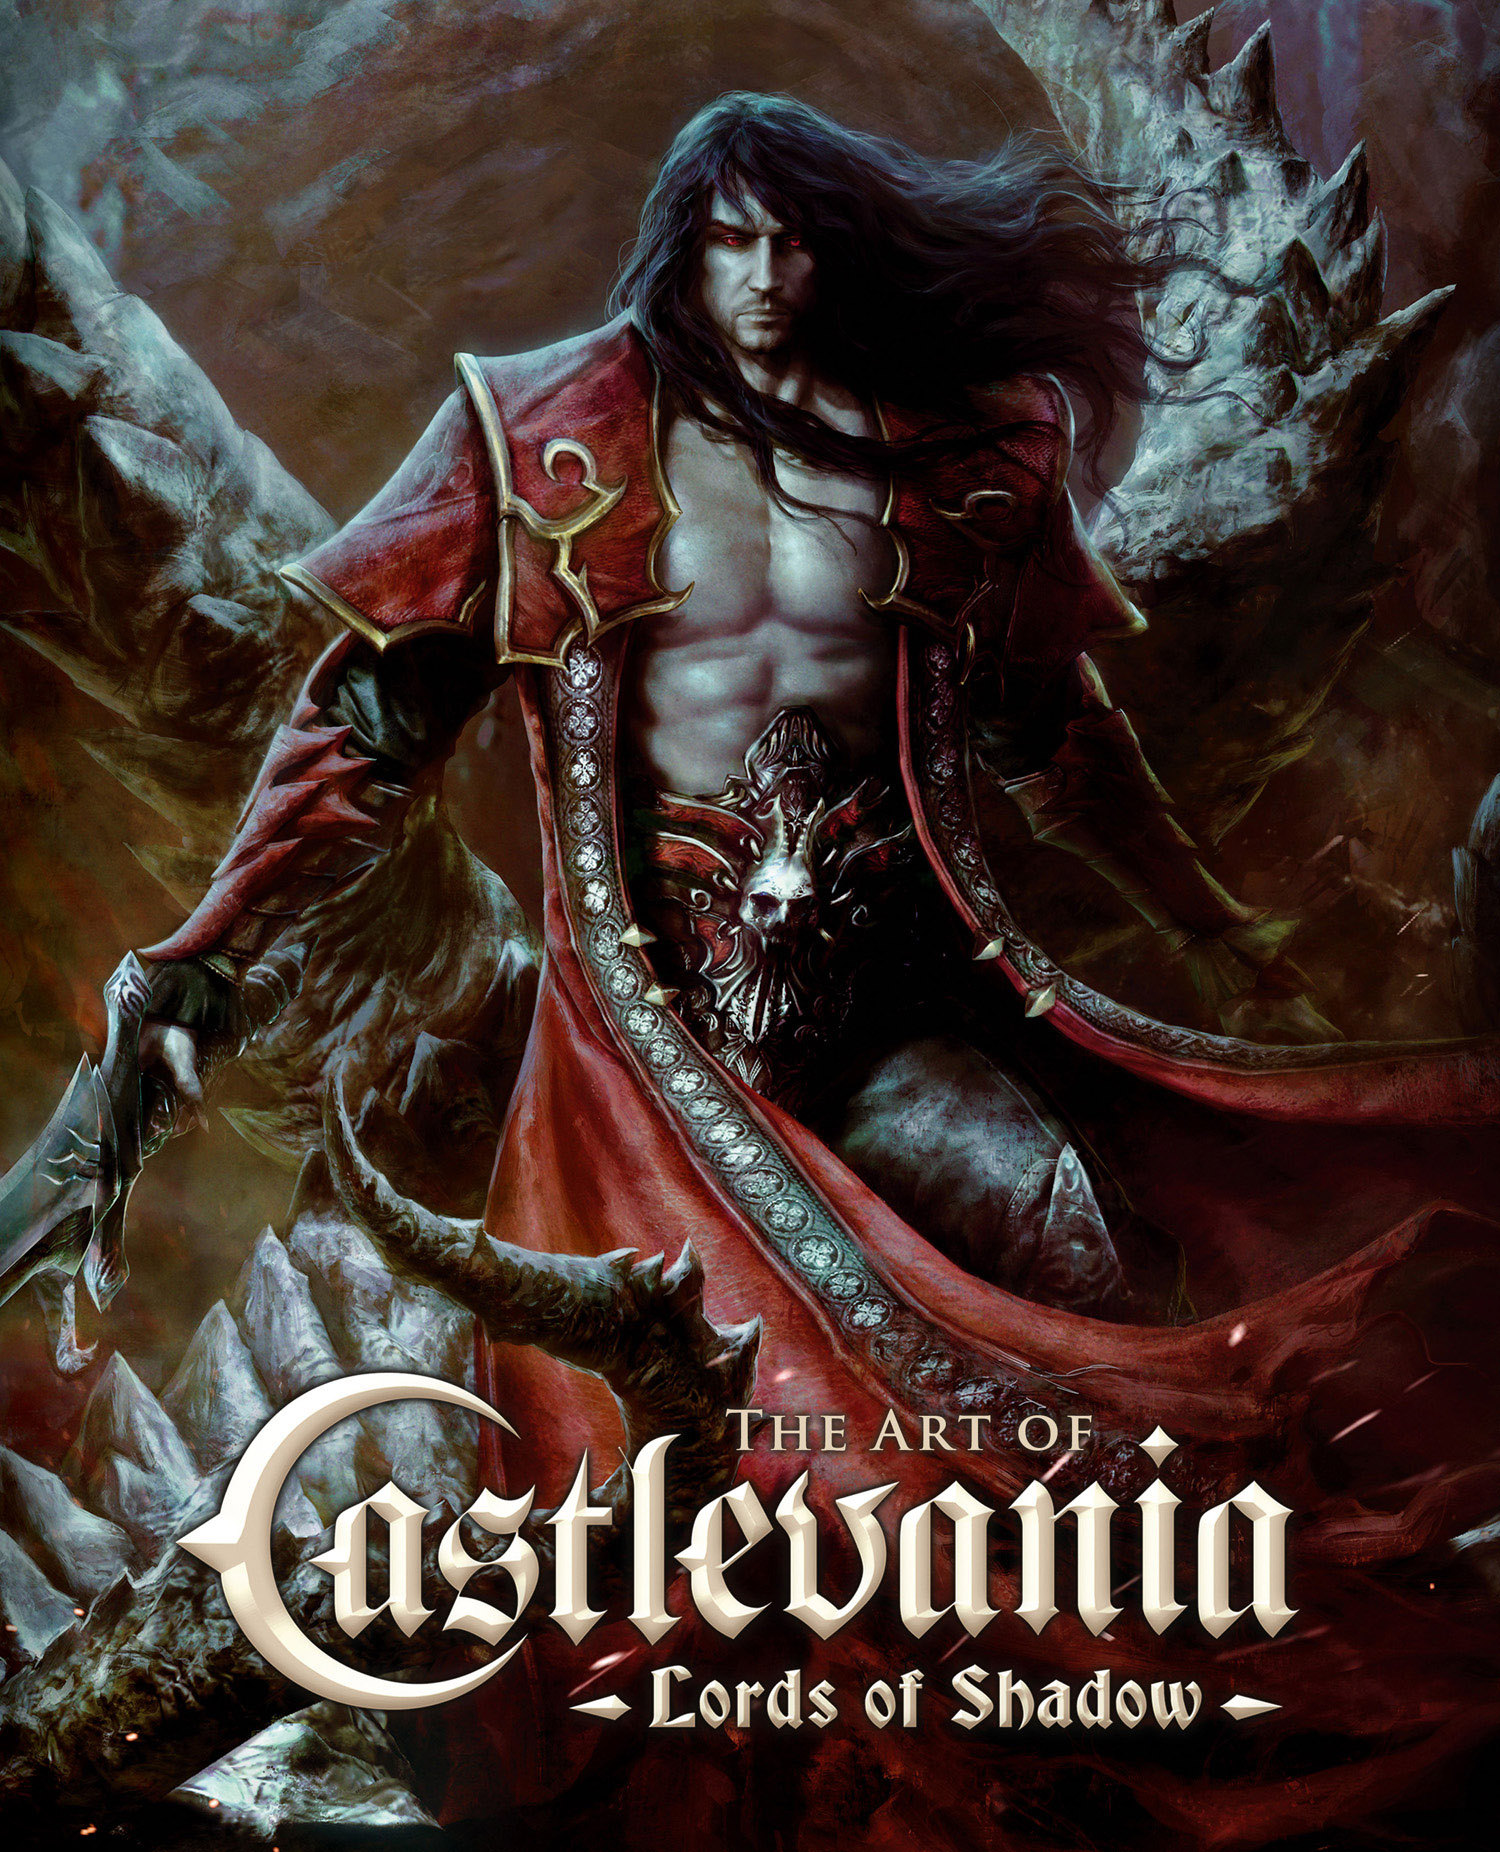 Castlevania Video Game Concept Art and Design